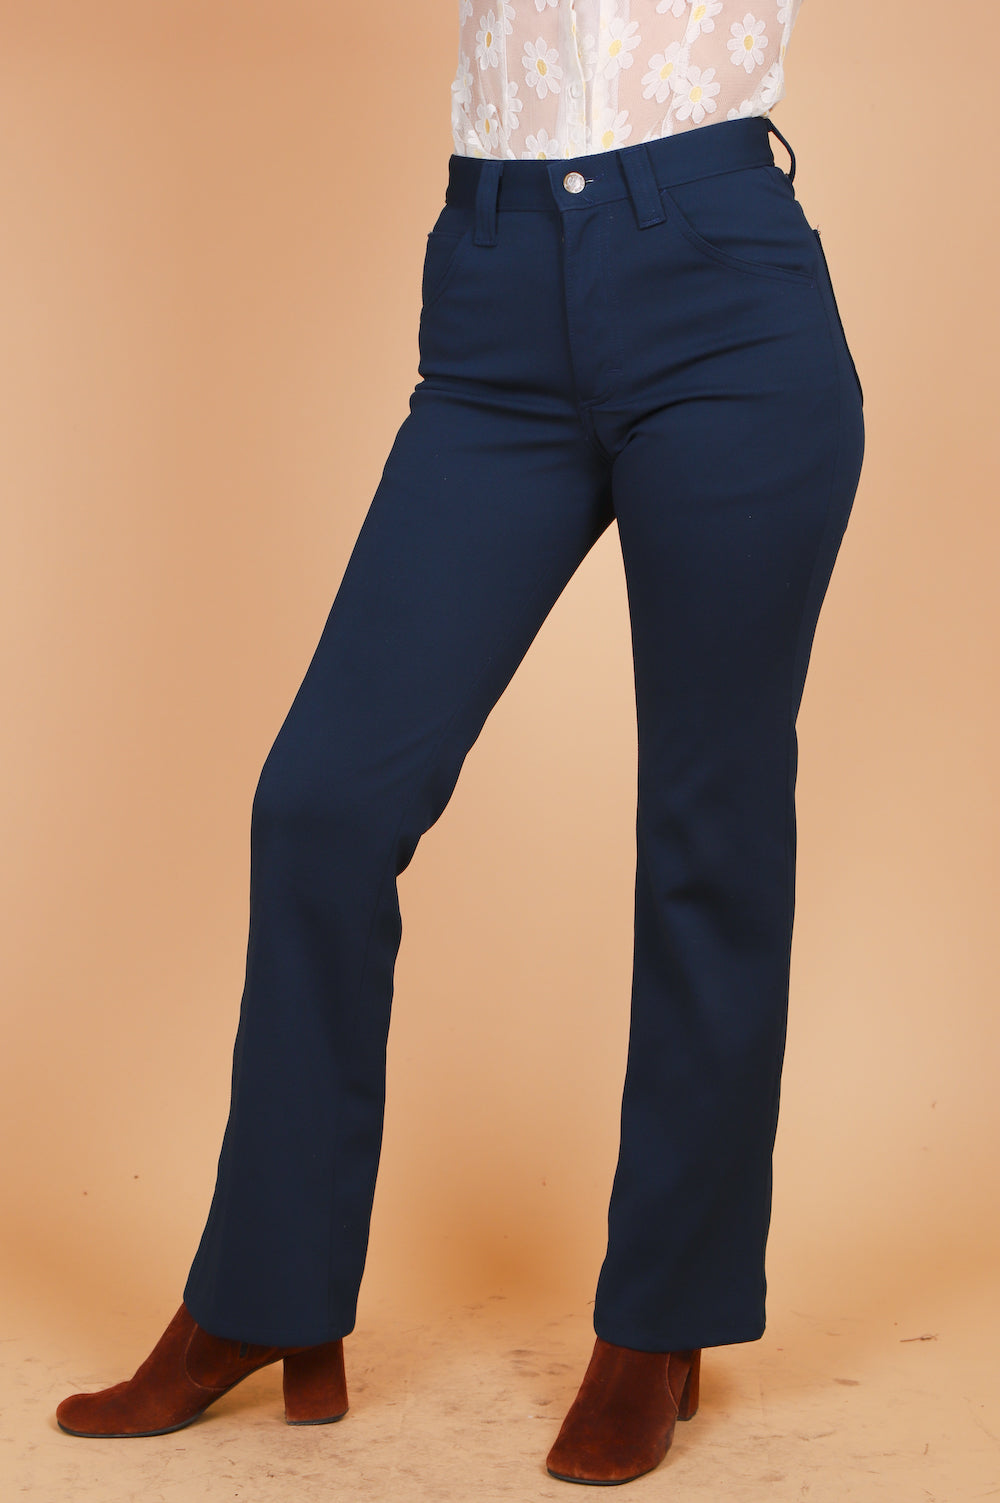 Vintage 1960's Behind Blue Eyes Navy Pants